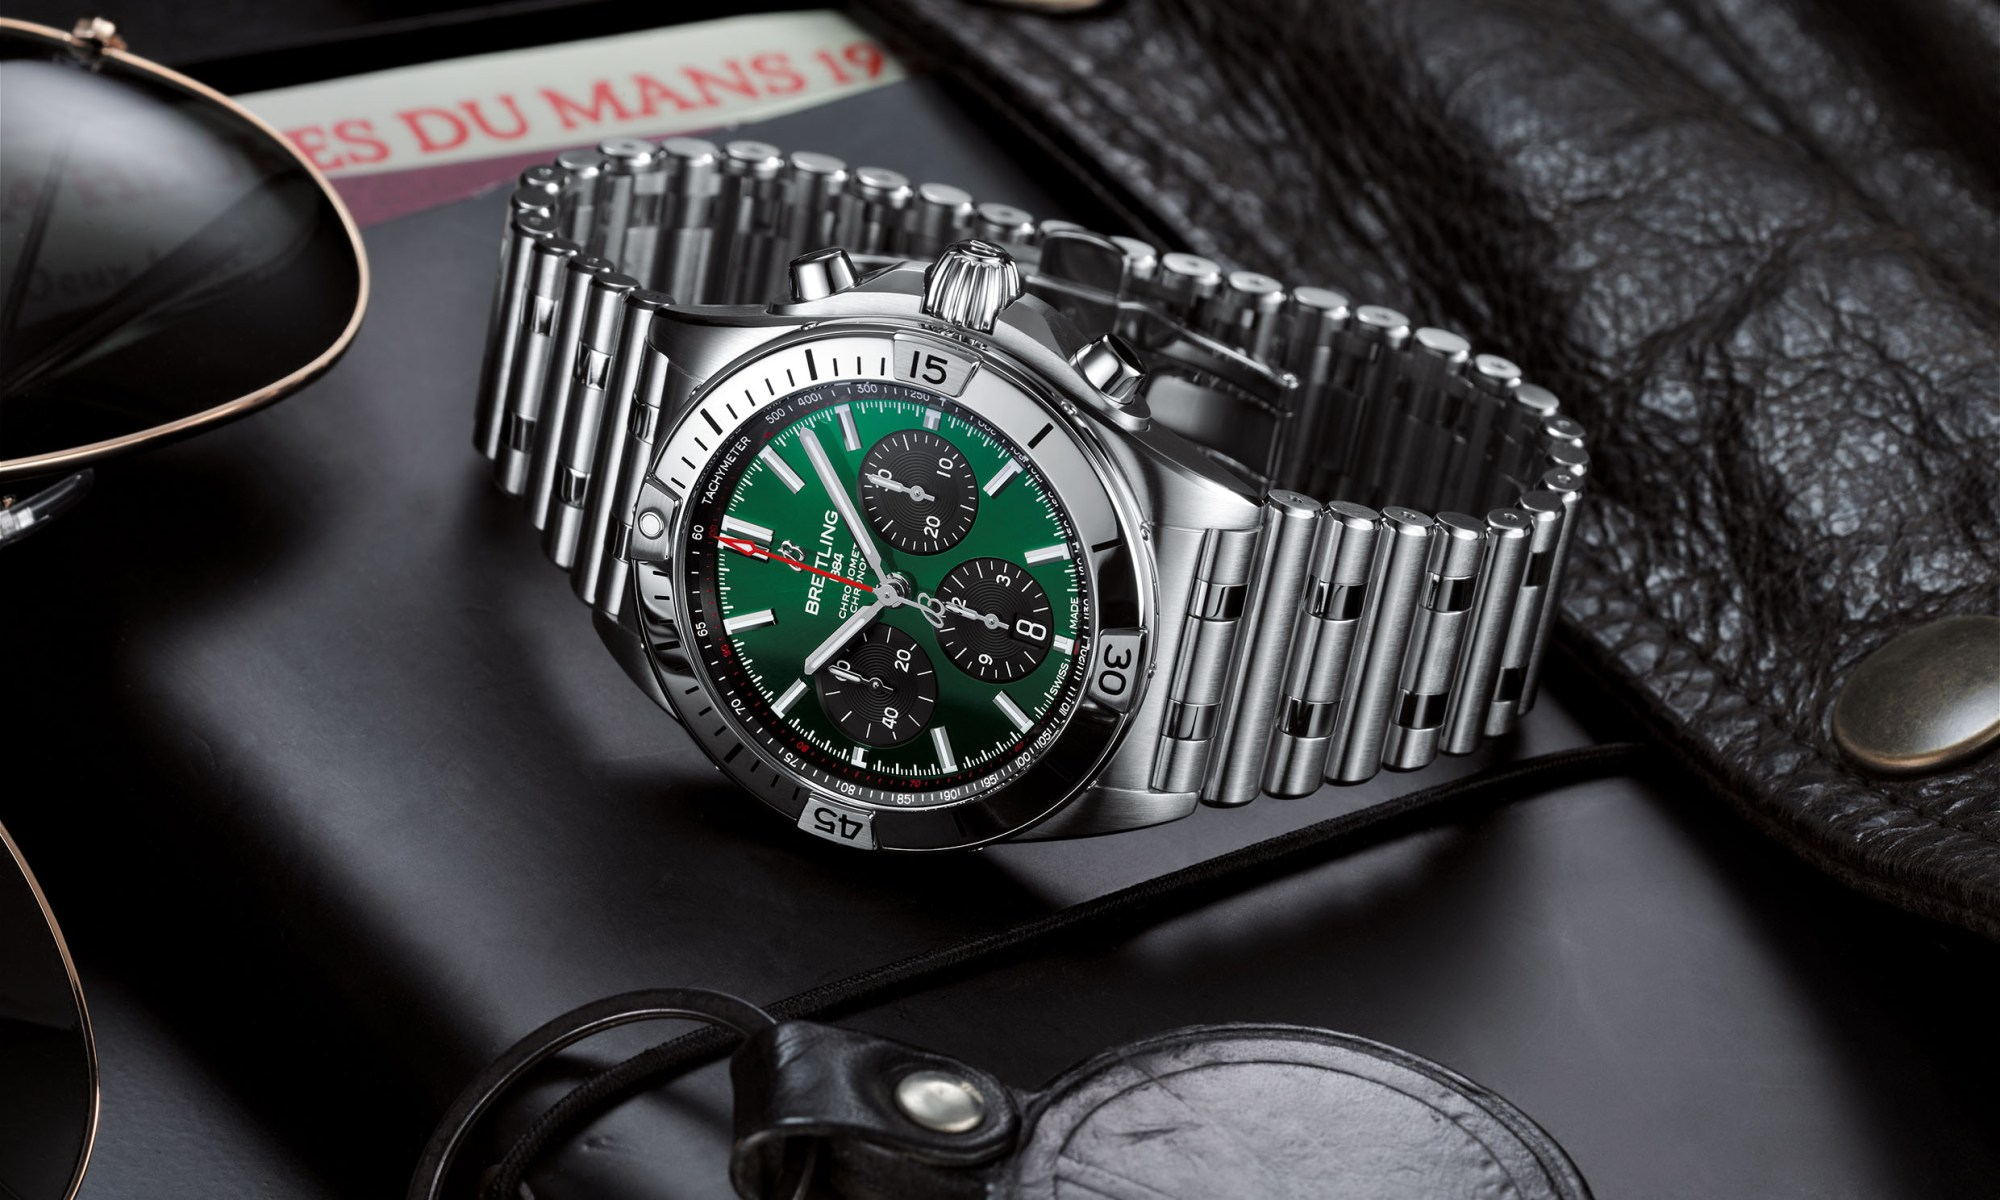 07 Chronomat B01 42 Bentley With A Green Dial And Black Contrasting Chronograph Counters